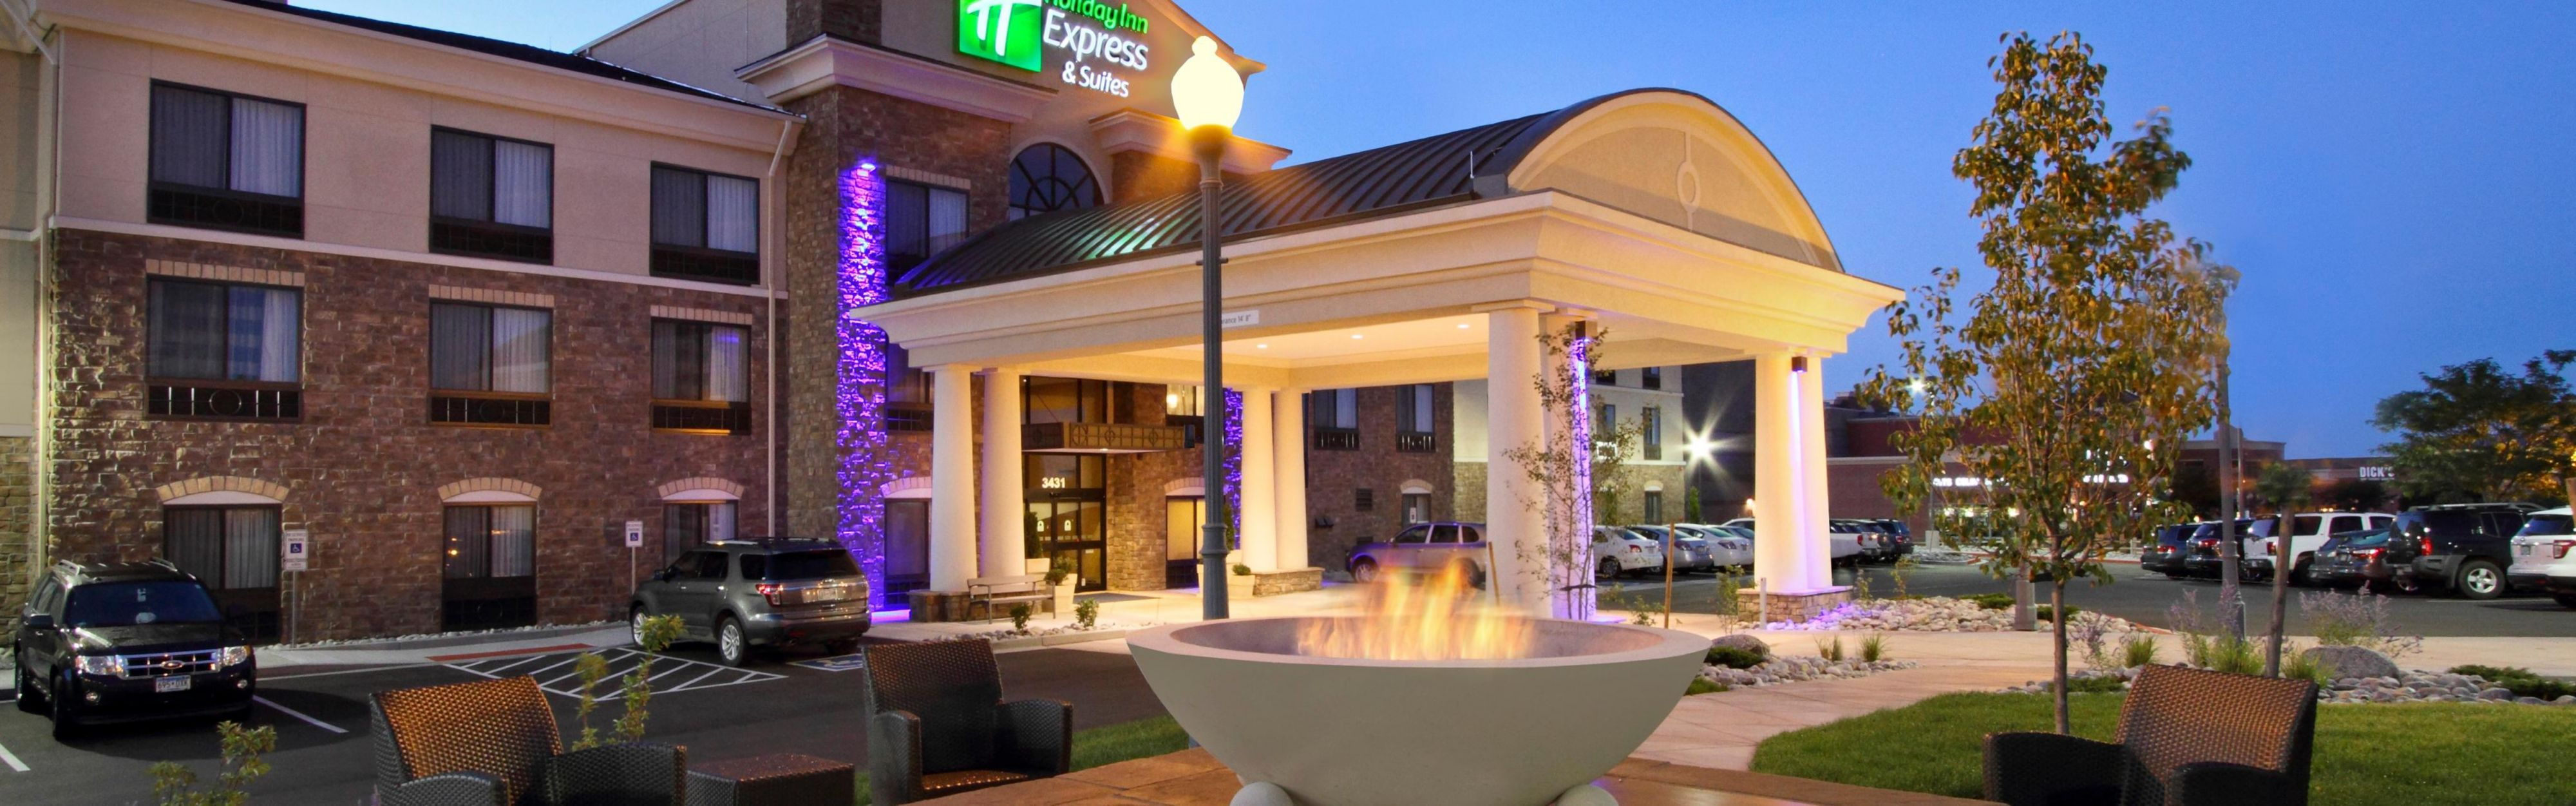 Holiday Inn Express & Suites Colorado Springs-First & Main image 0